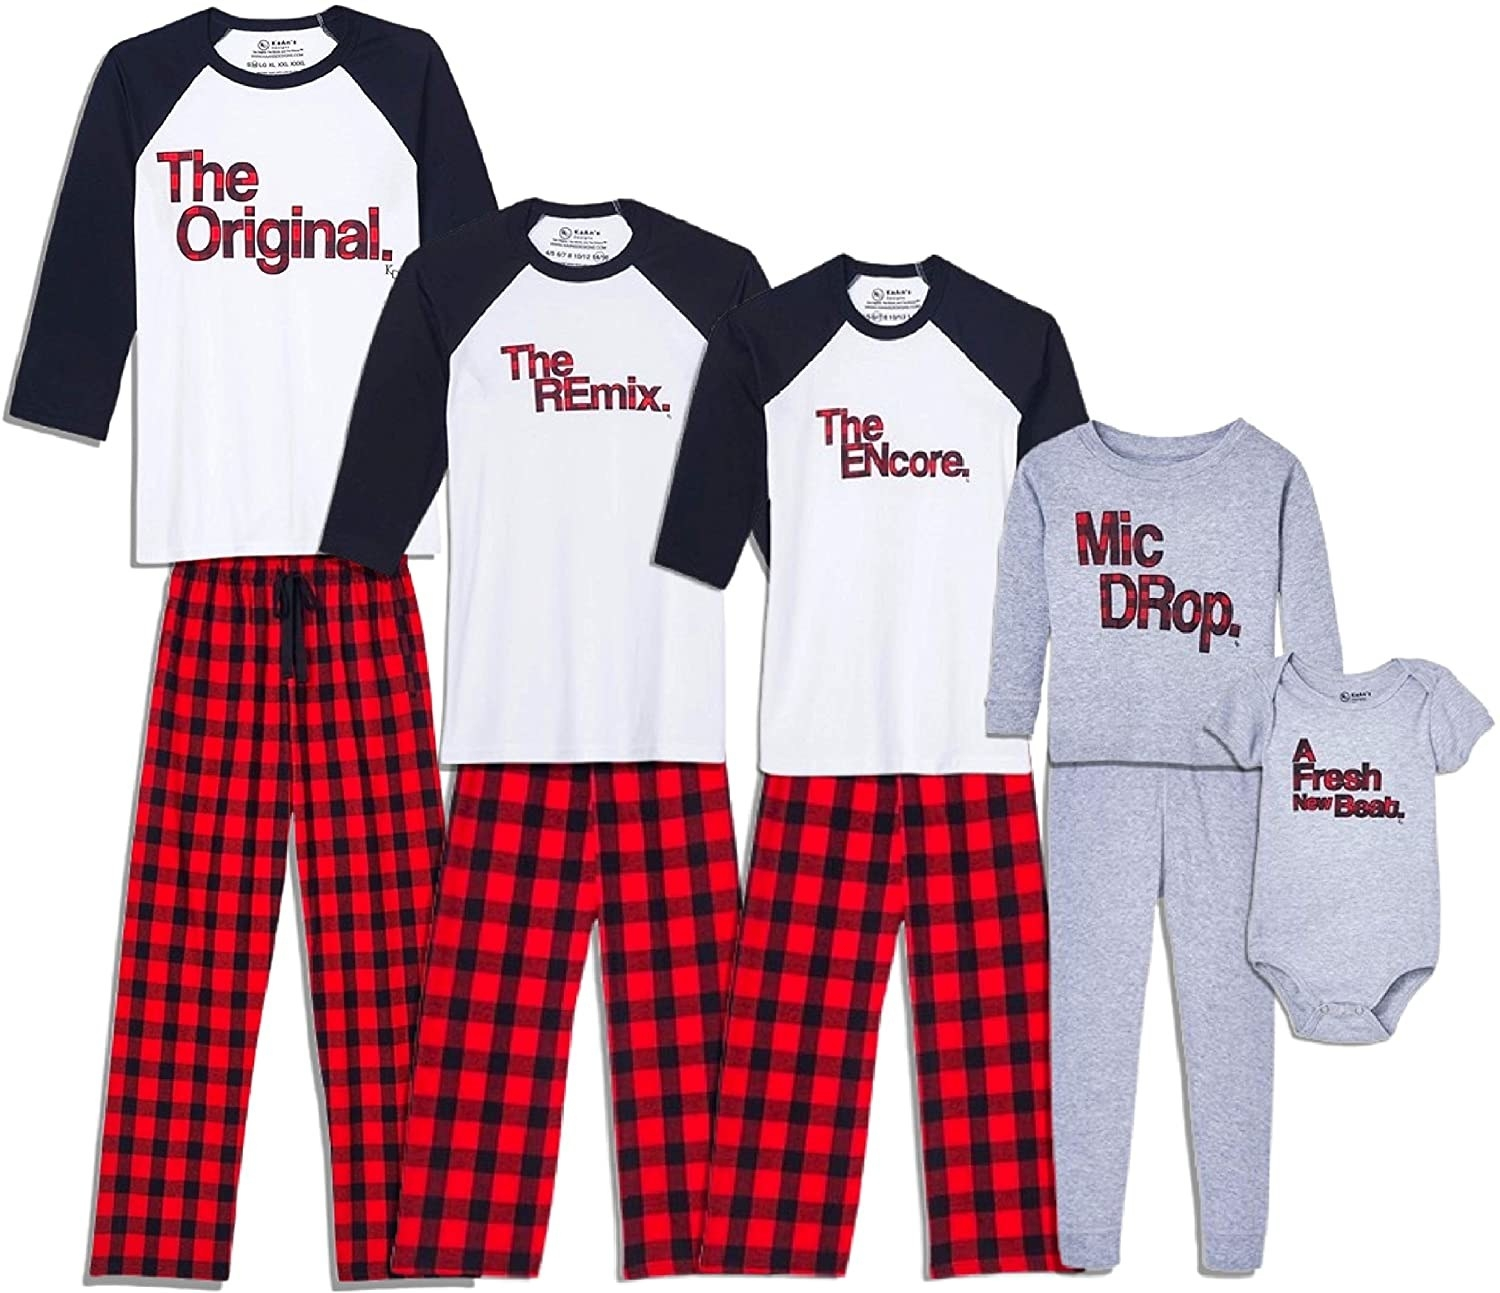 """The plaid and grey PJs that say """"The original, the Remix, the encore, mic drop, and a fresh new beat"""""""